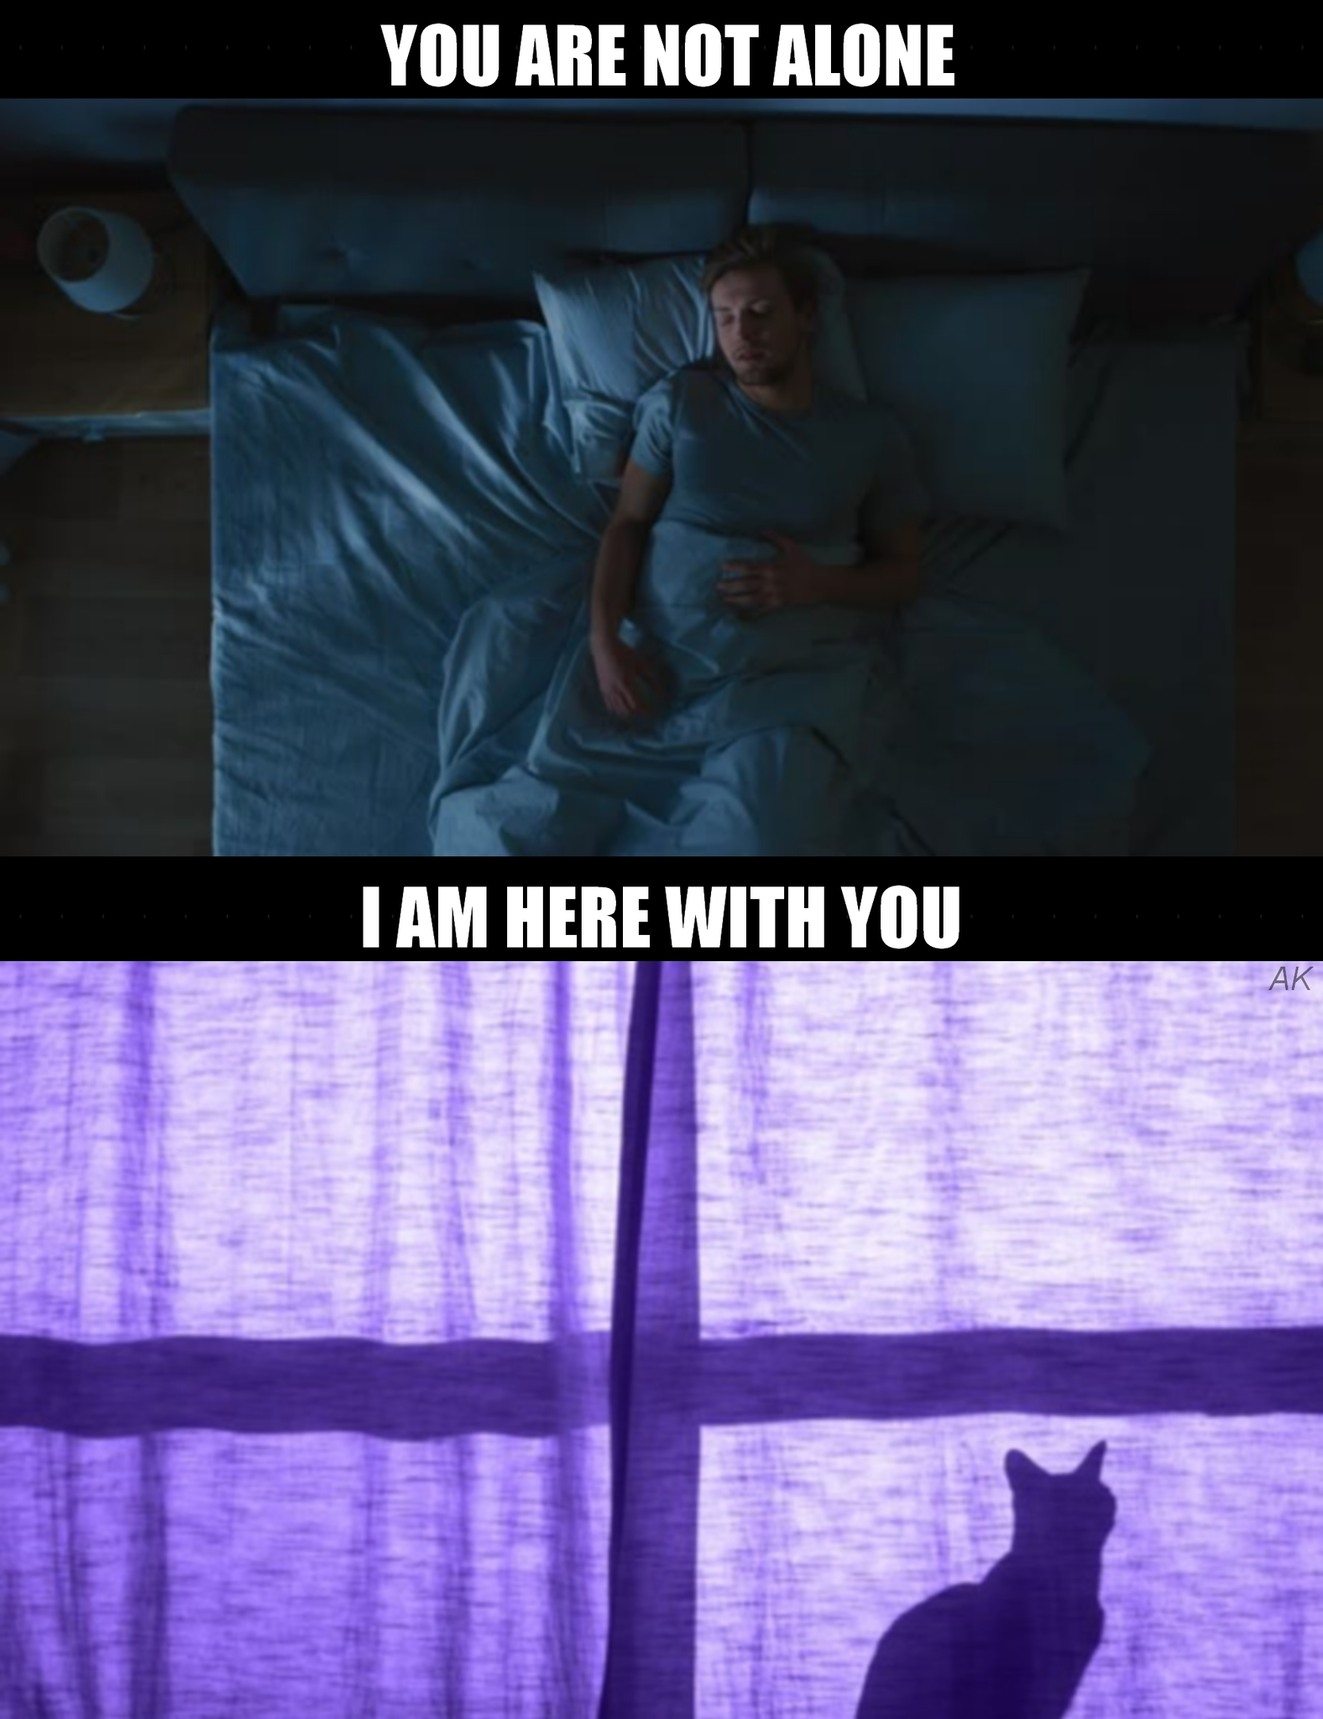 You are not alone miaw - meme